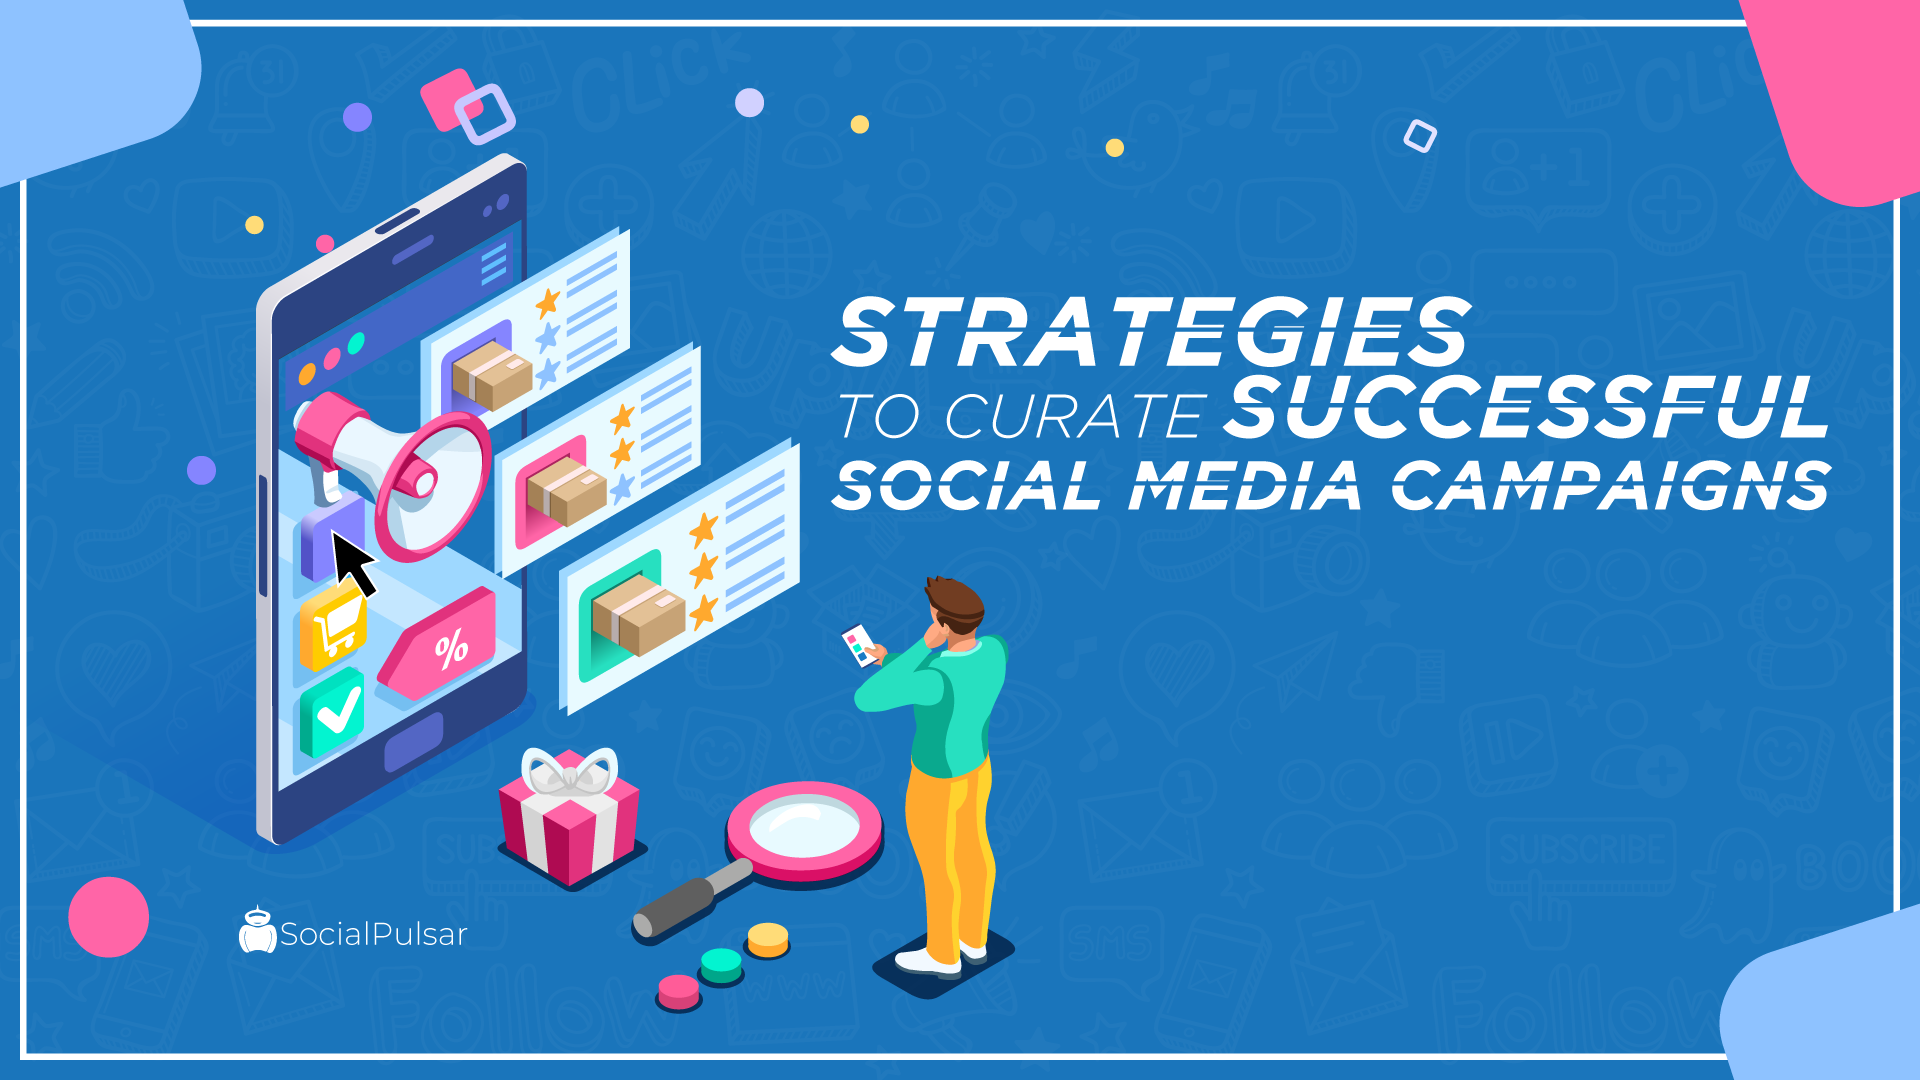 Strategies To Curate Successful Social Media Campaigns